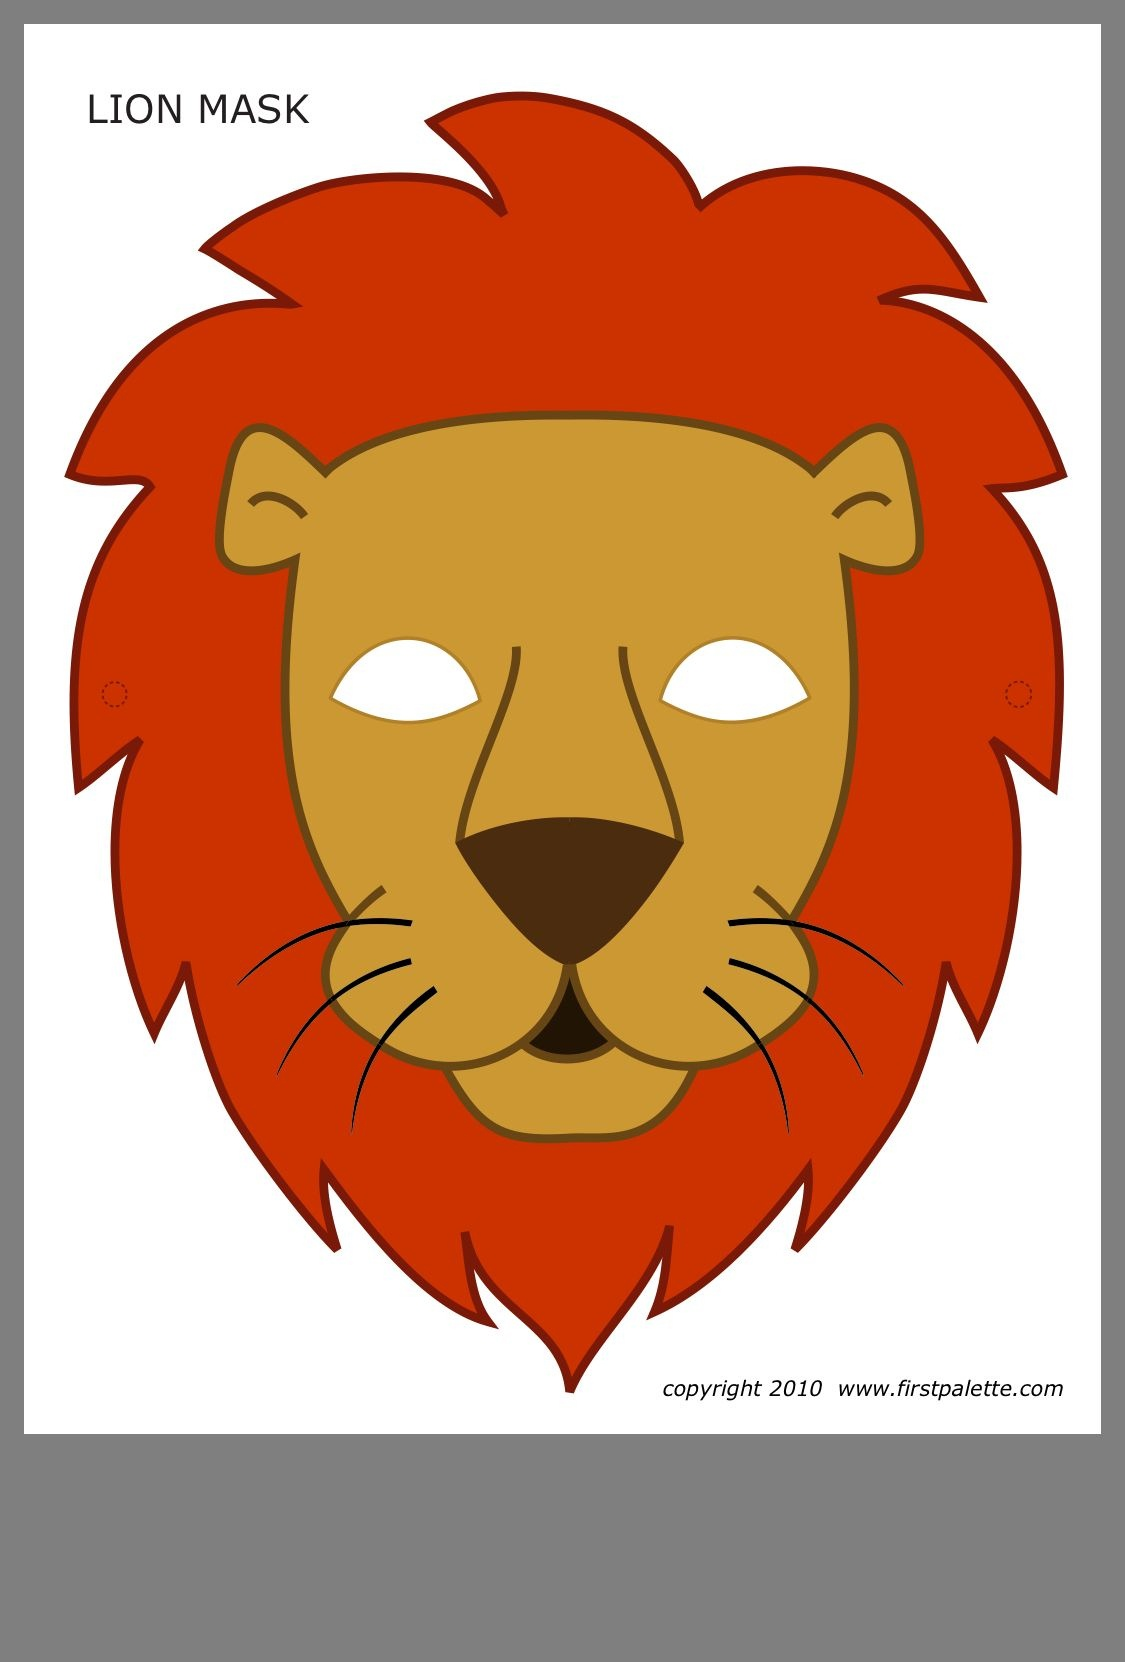 Pinbrenda S. On Bible Club | Lion Mask, Printable Halloween - Free Printable Lion Mask